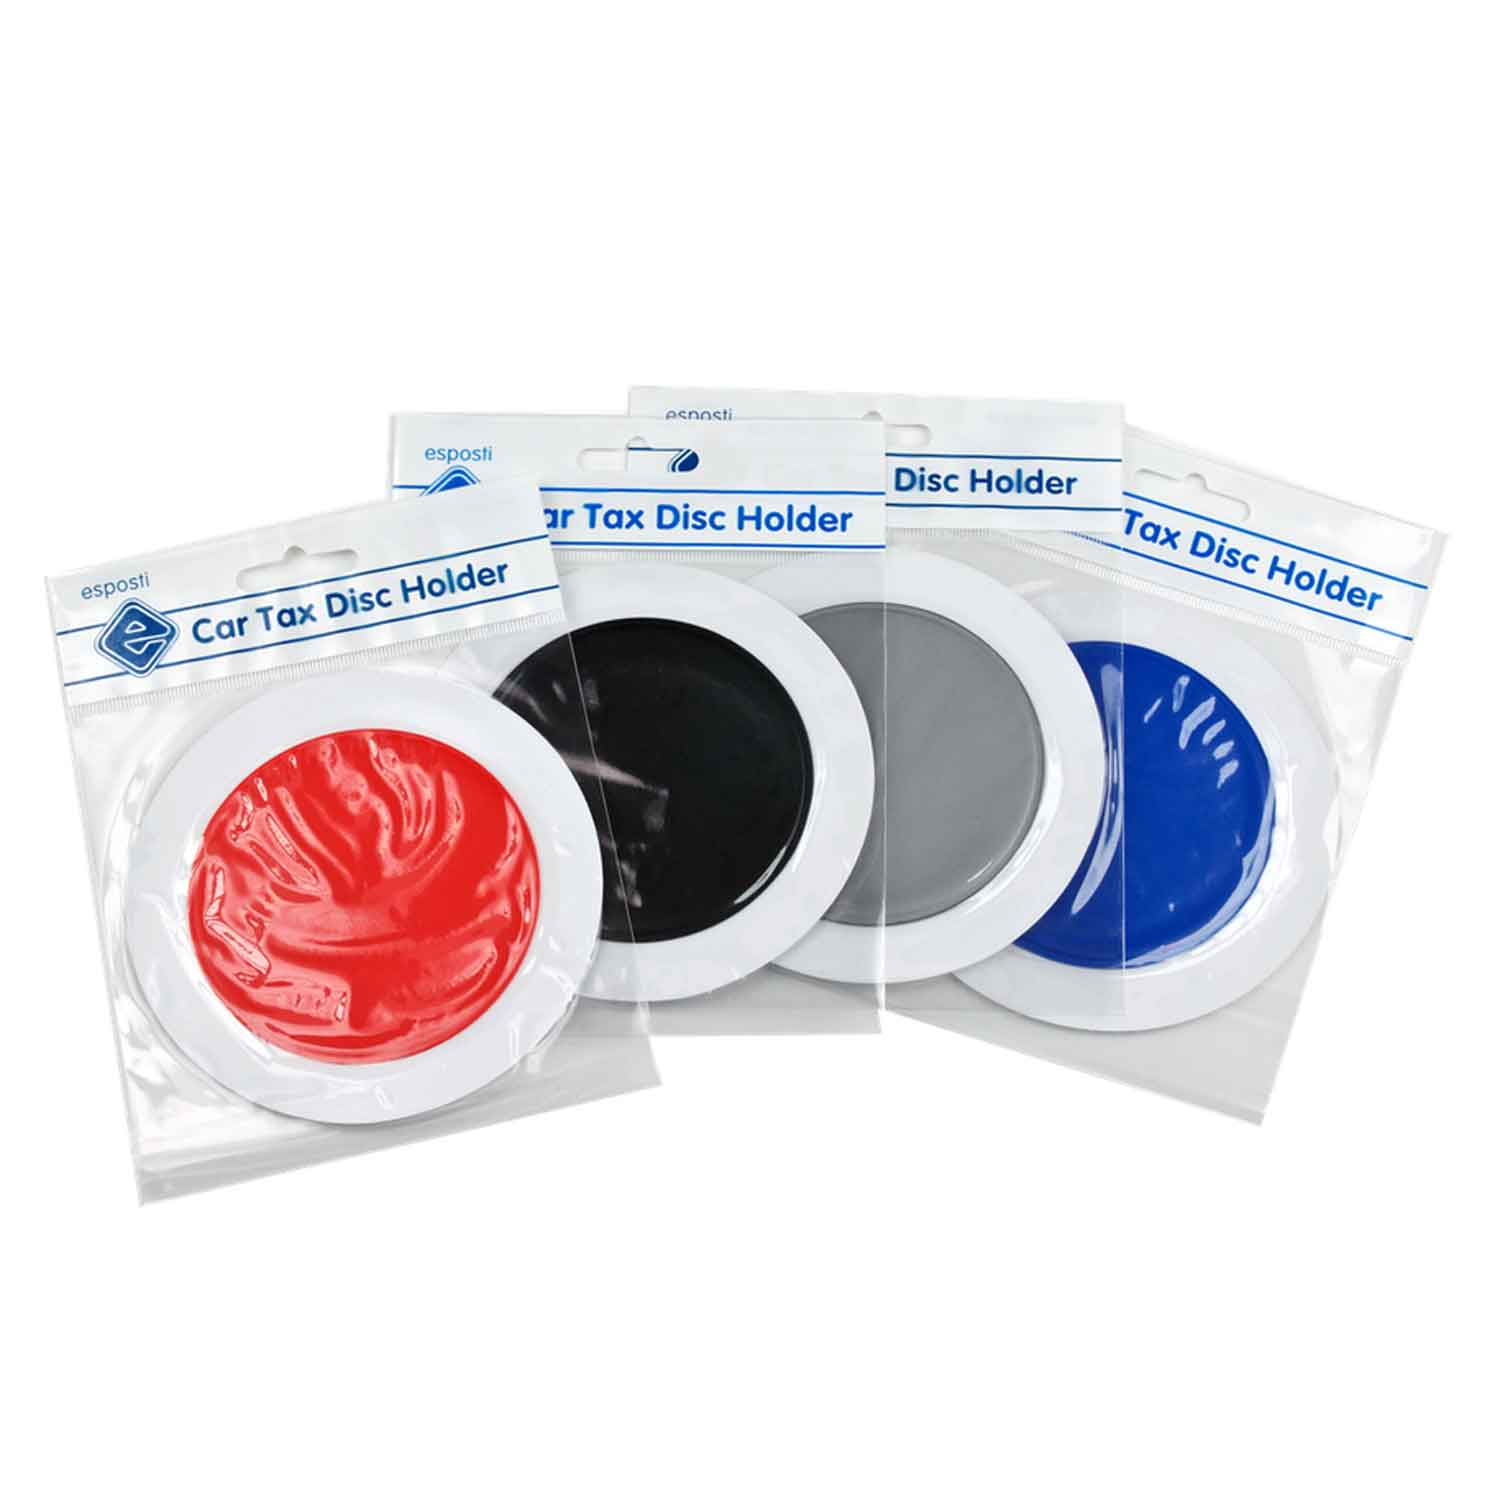 Circular Permit Holder - Car Tax Disc Holders - Pack of 20